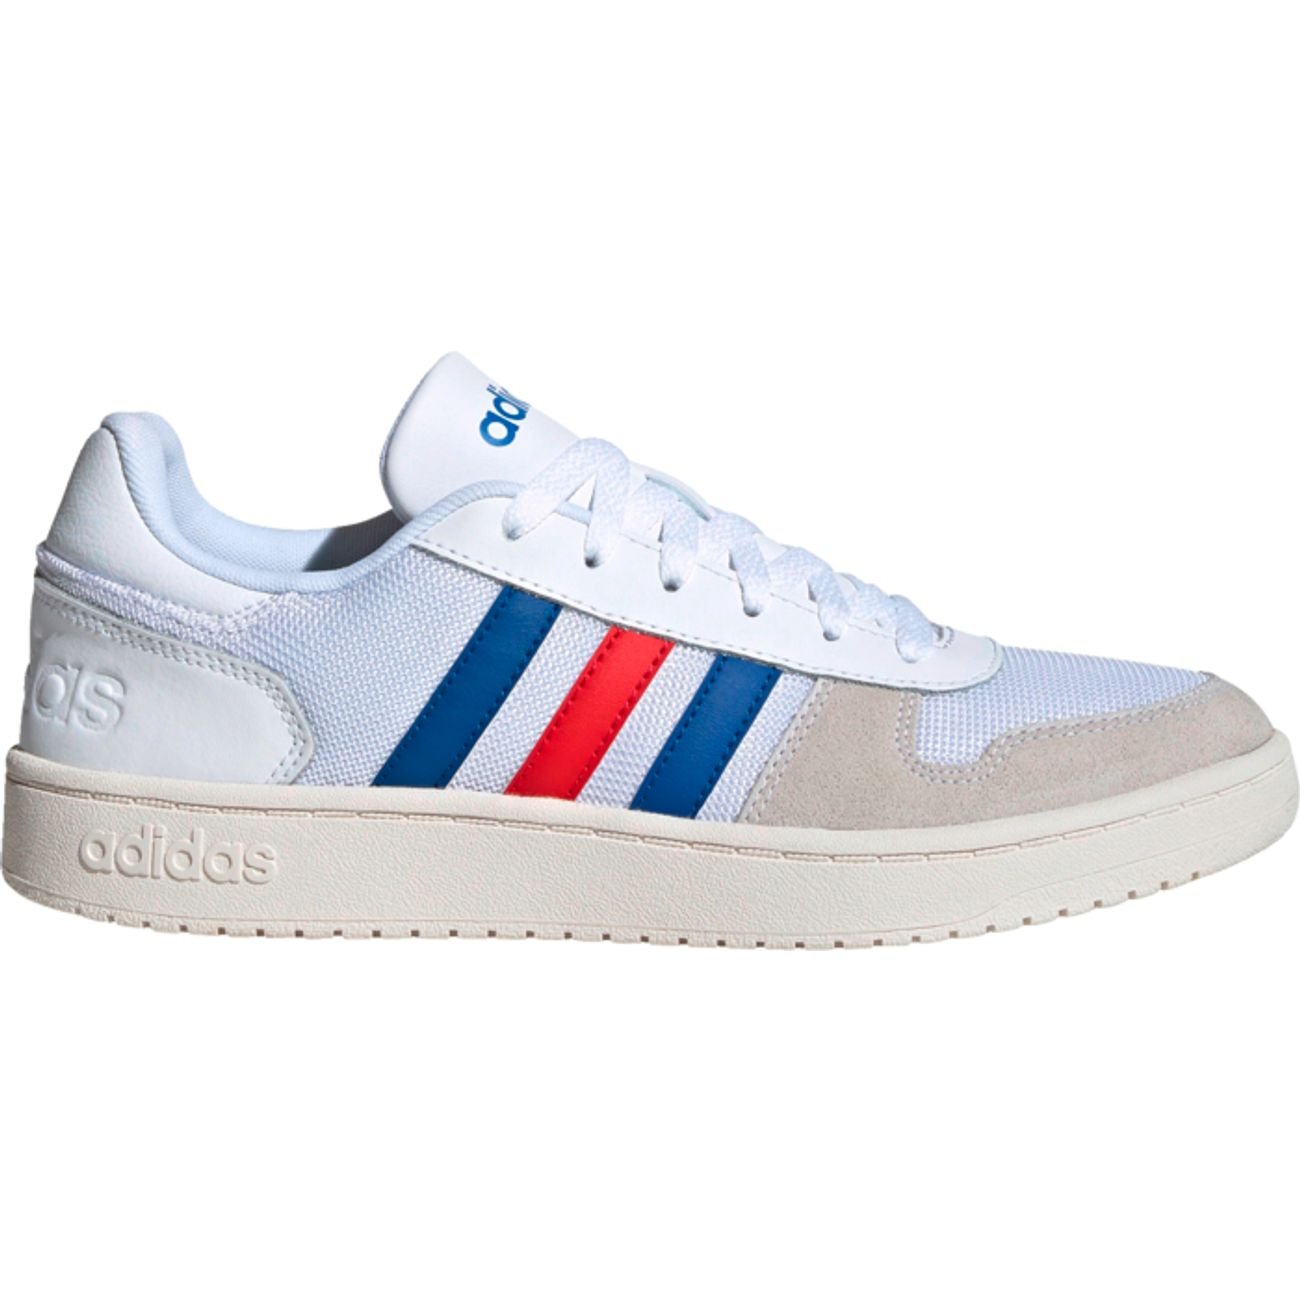 CHAUSSURES BASSES Basketball homme ADIDAS HOOPS 2.0